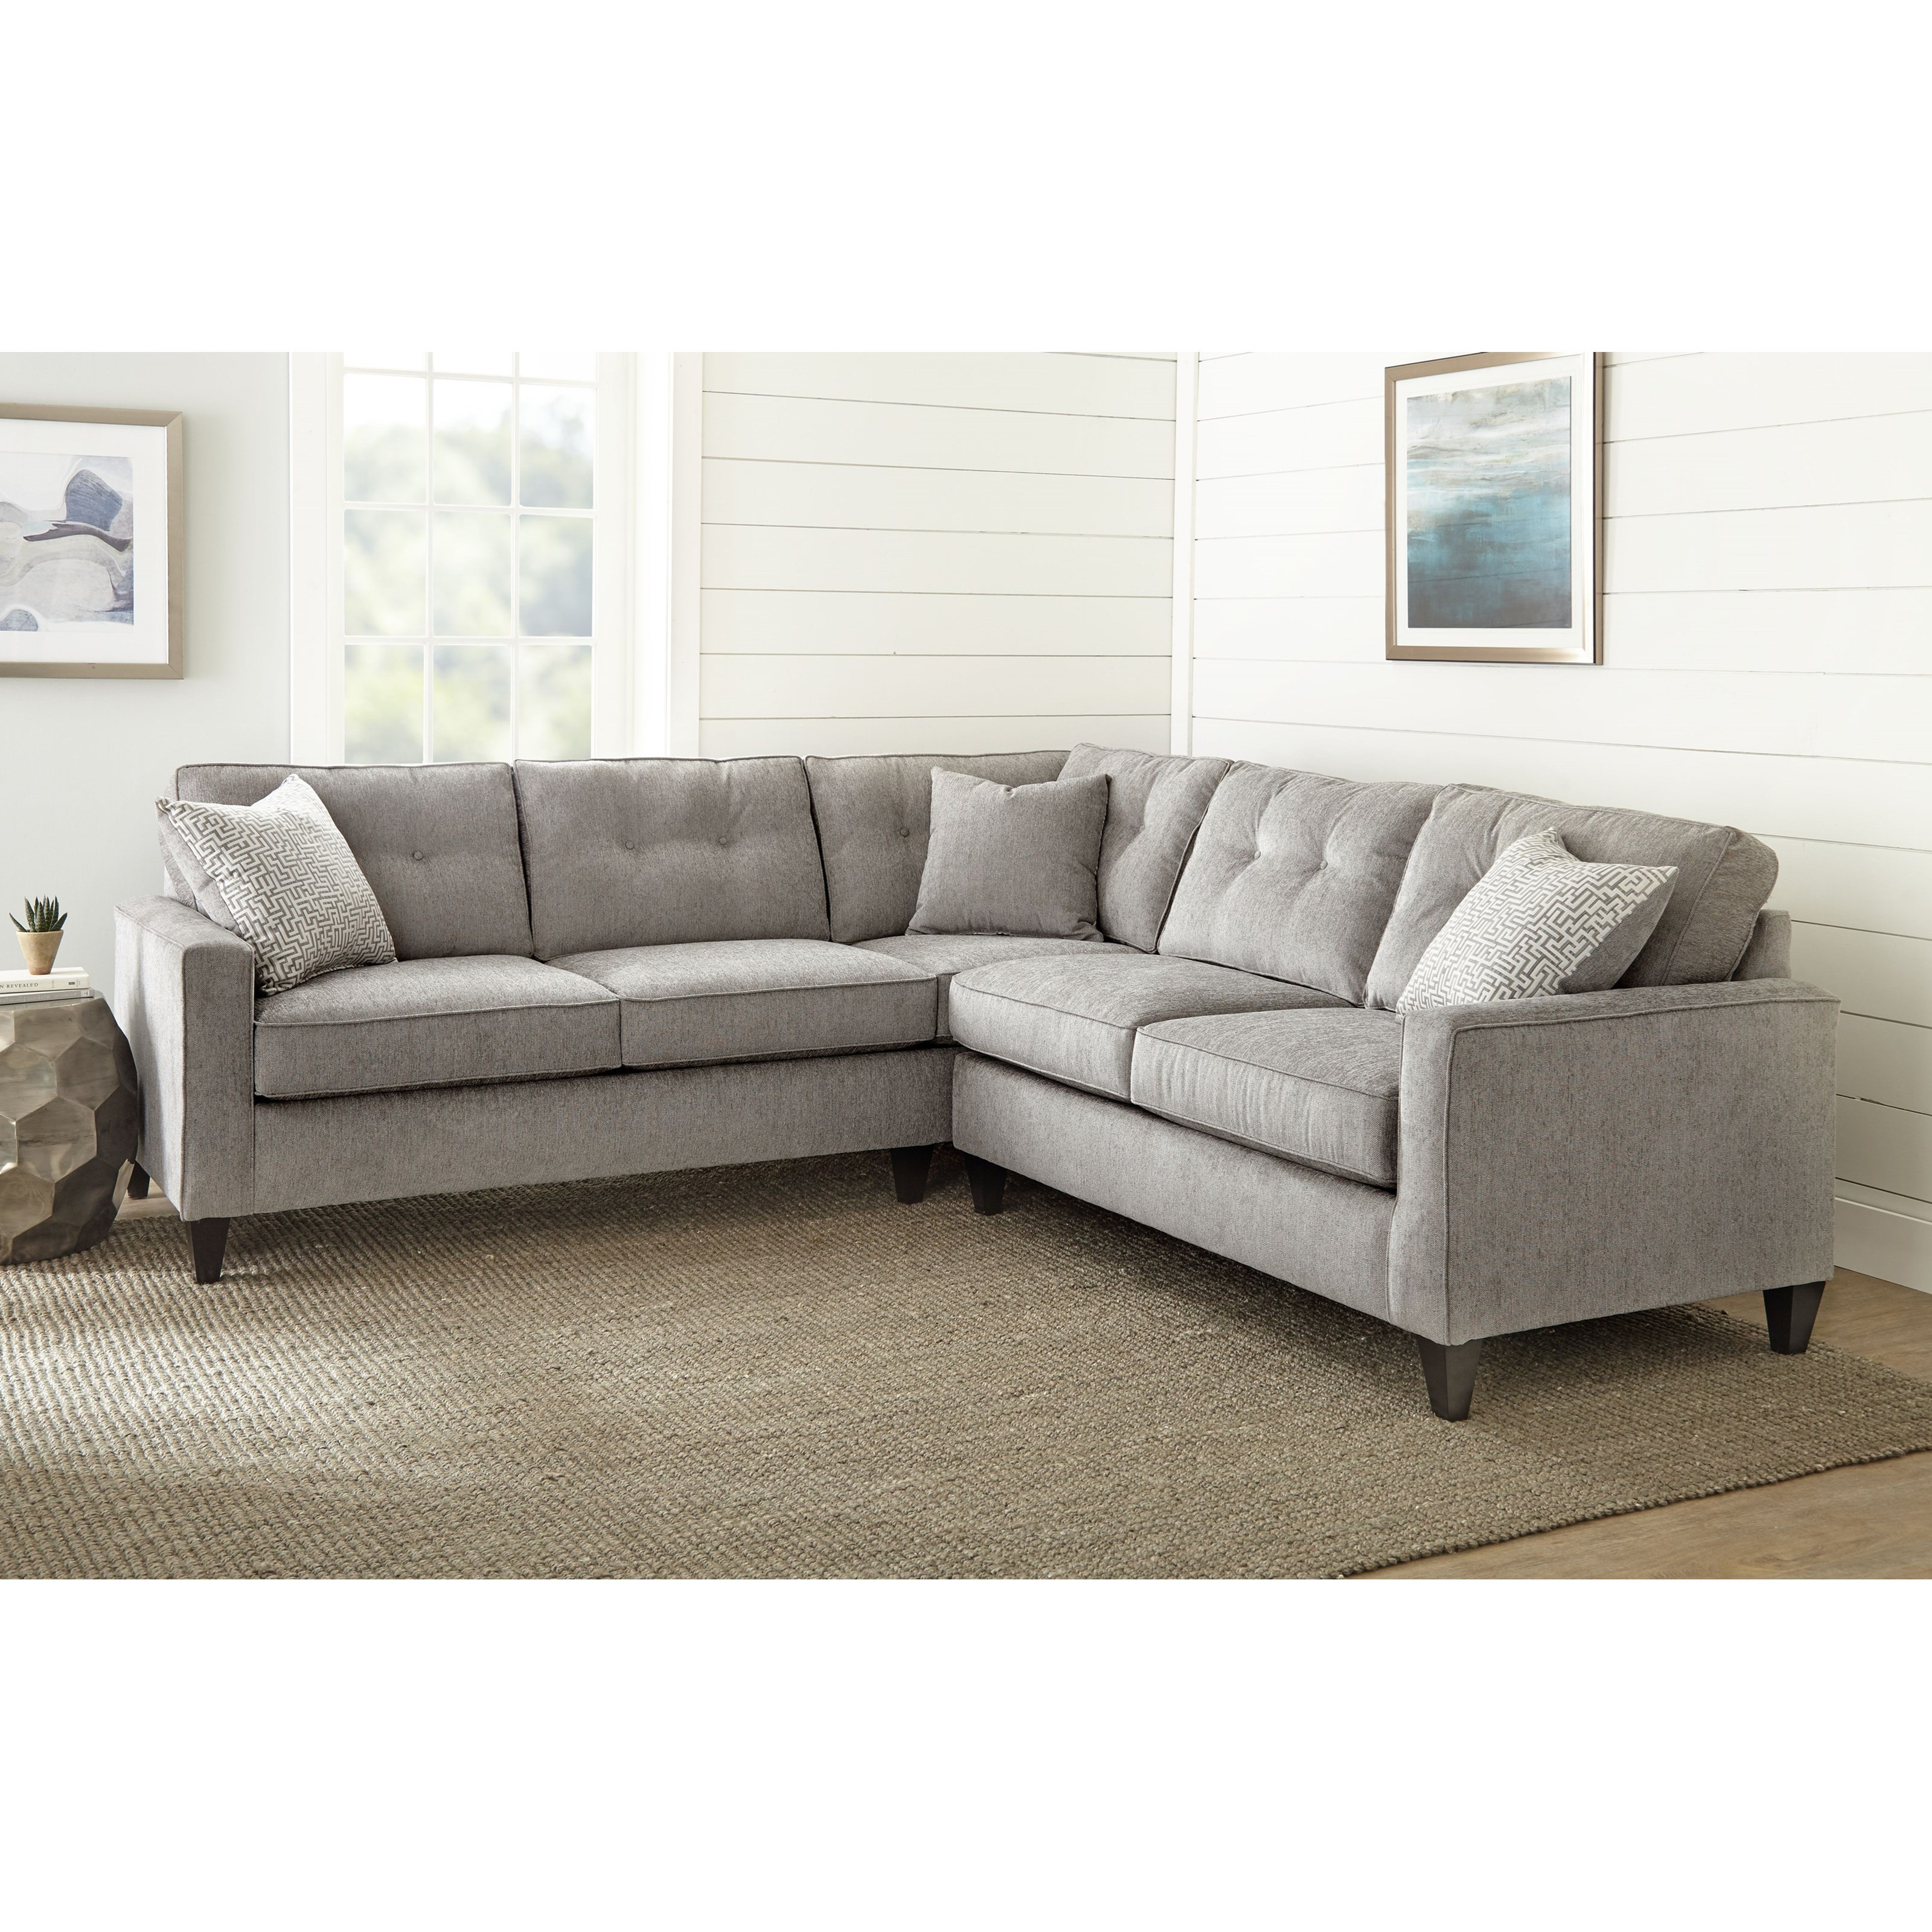 Maddox 2 Piece Sectional by Steve Silver at Van Hill Furniture